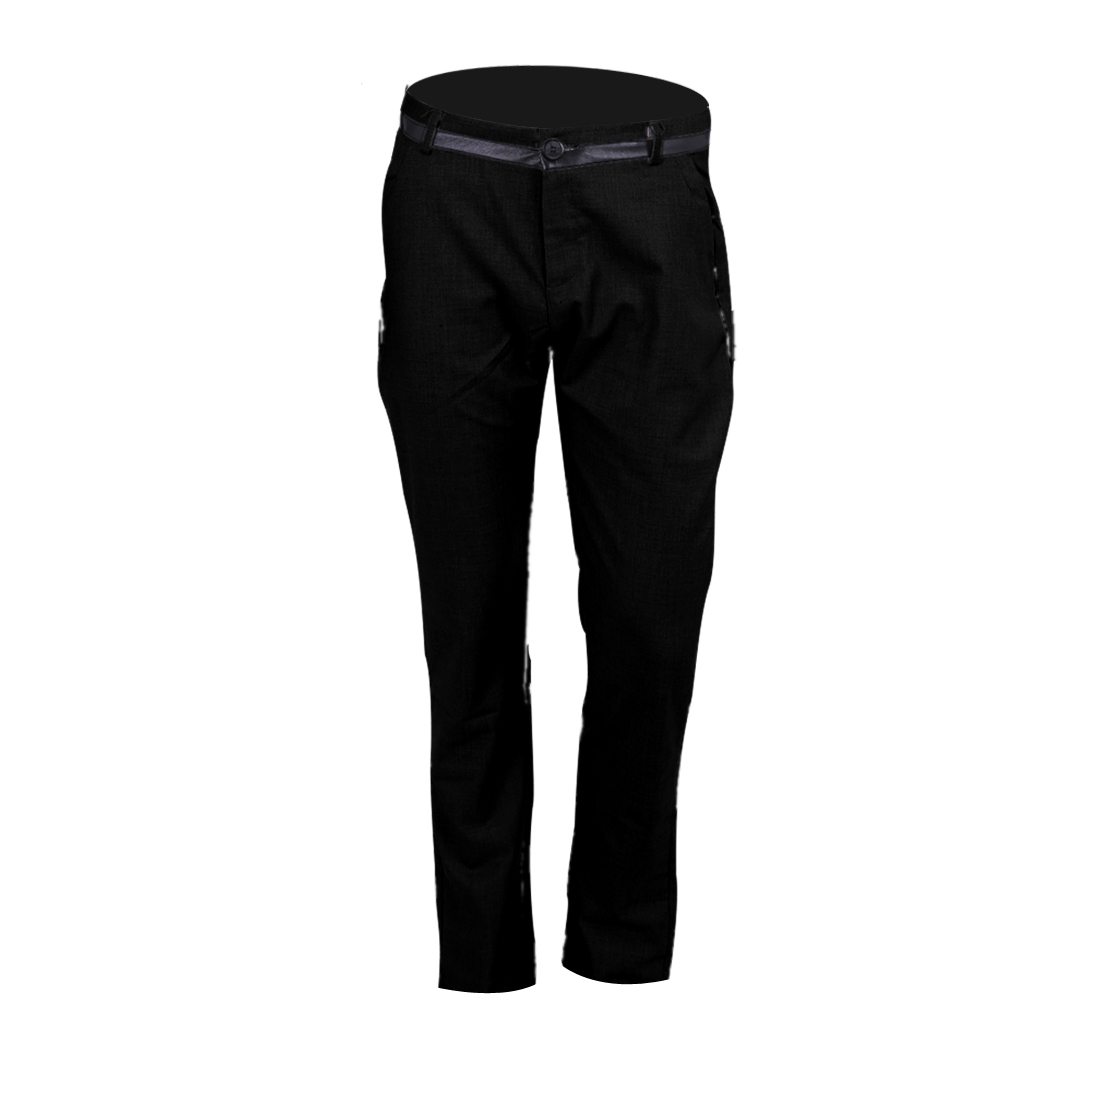 NEWS Men Zip Closure Slant Pockets Stylish Pants Black W32